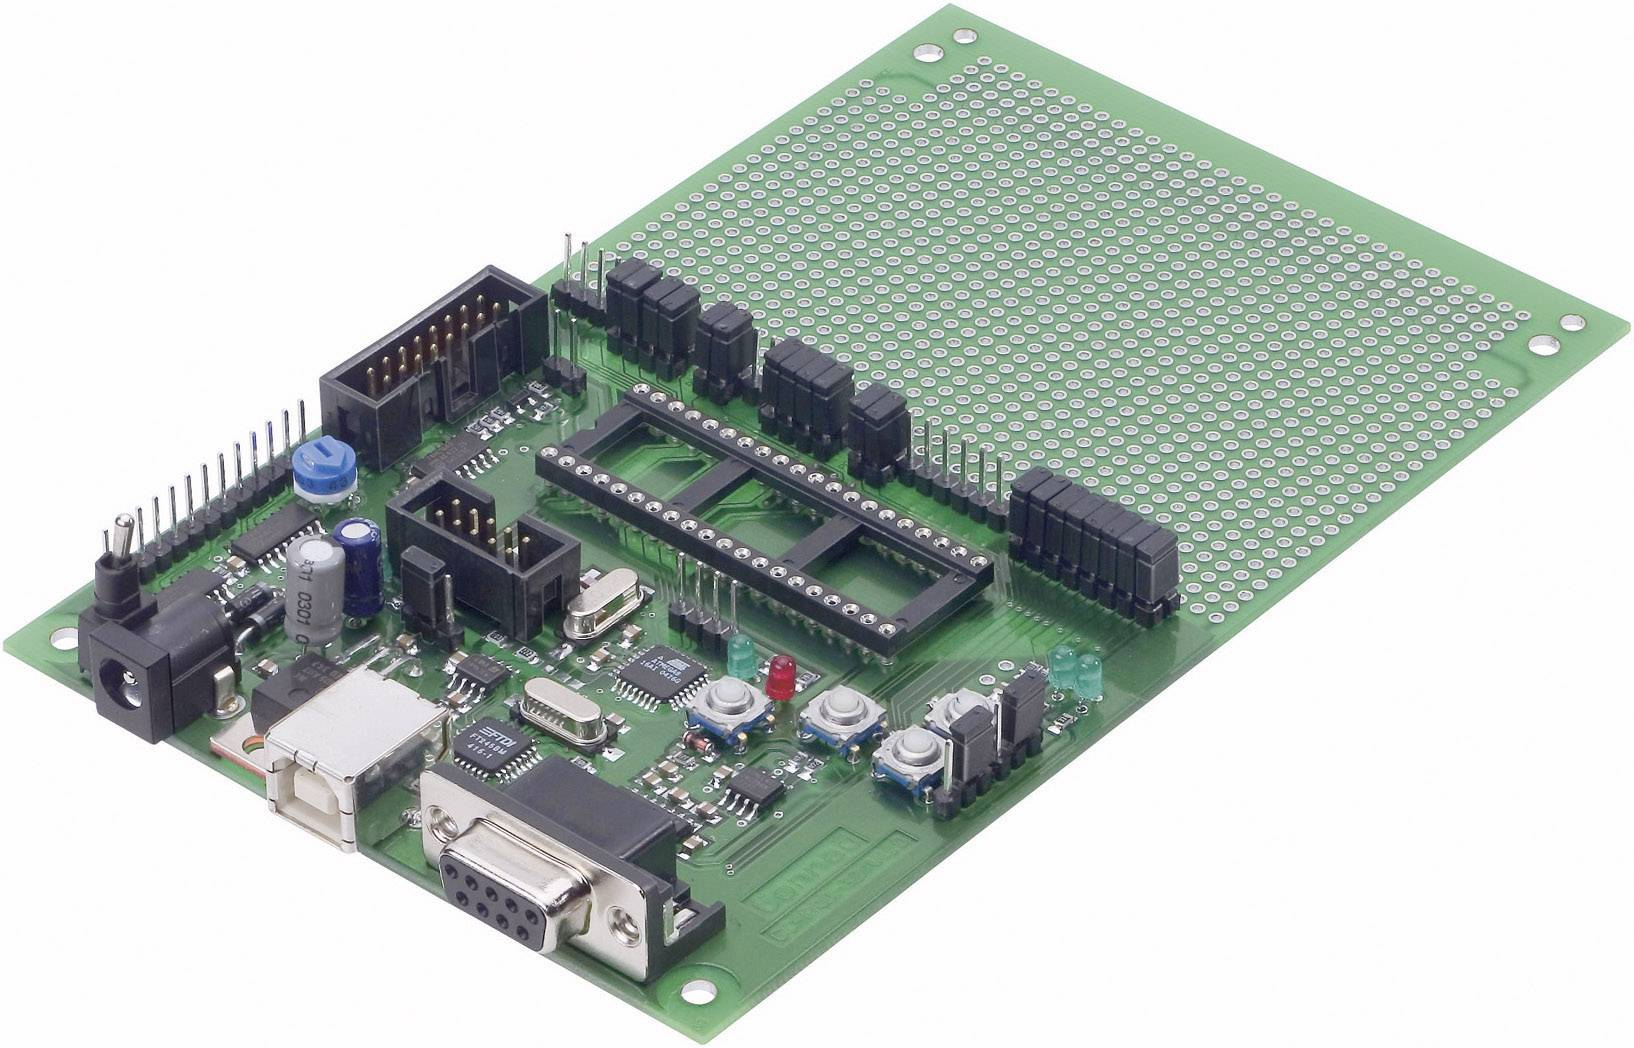 C-Control PRO Evaluation Board Mega 32, 9 V/DC, 125 mA, 100 x 160 mm